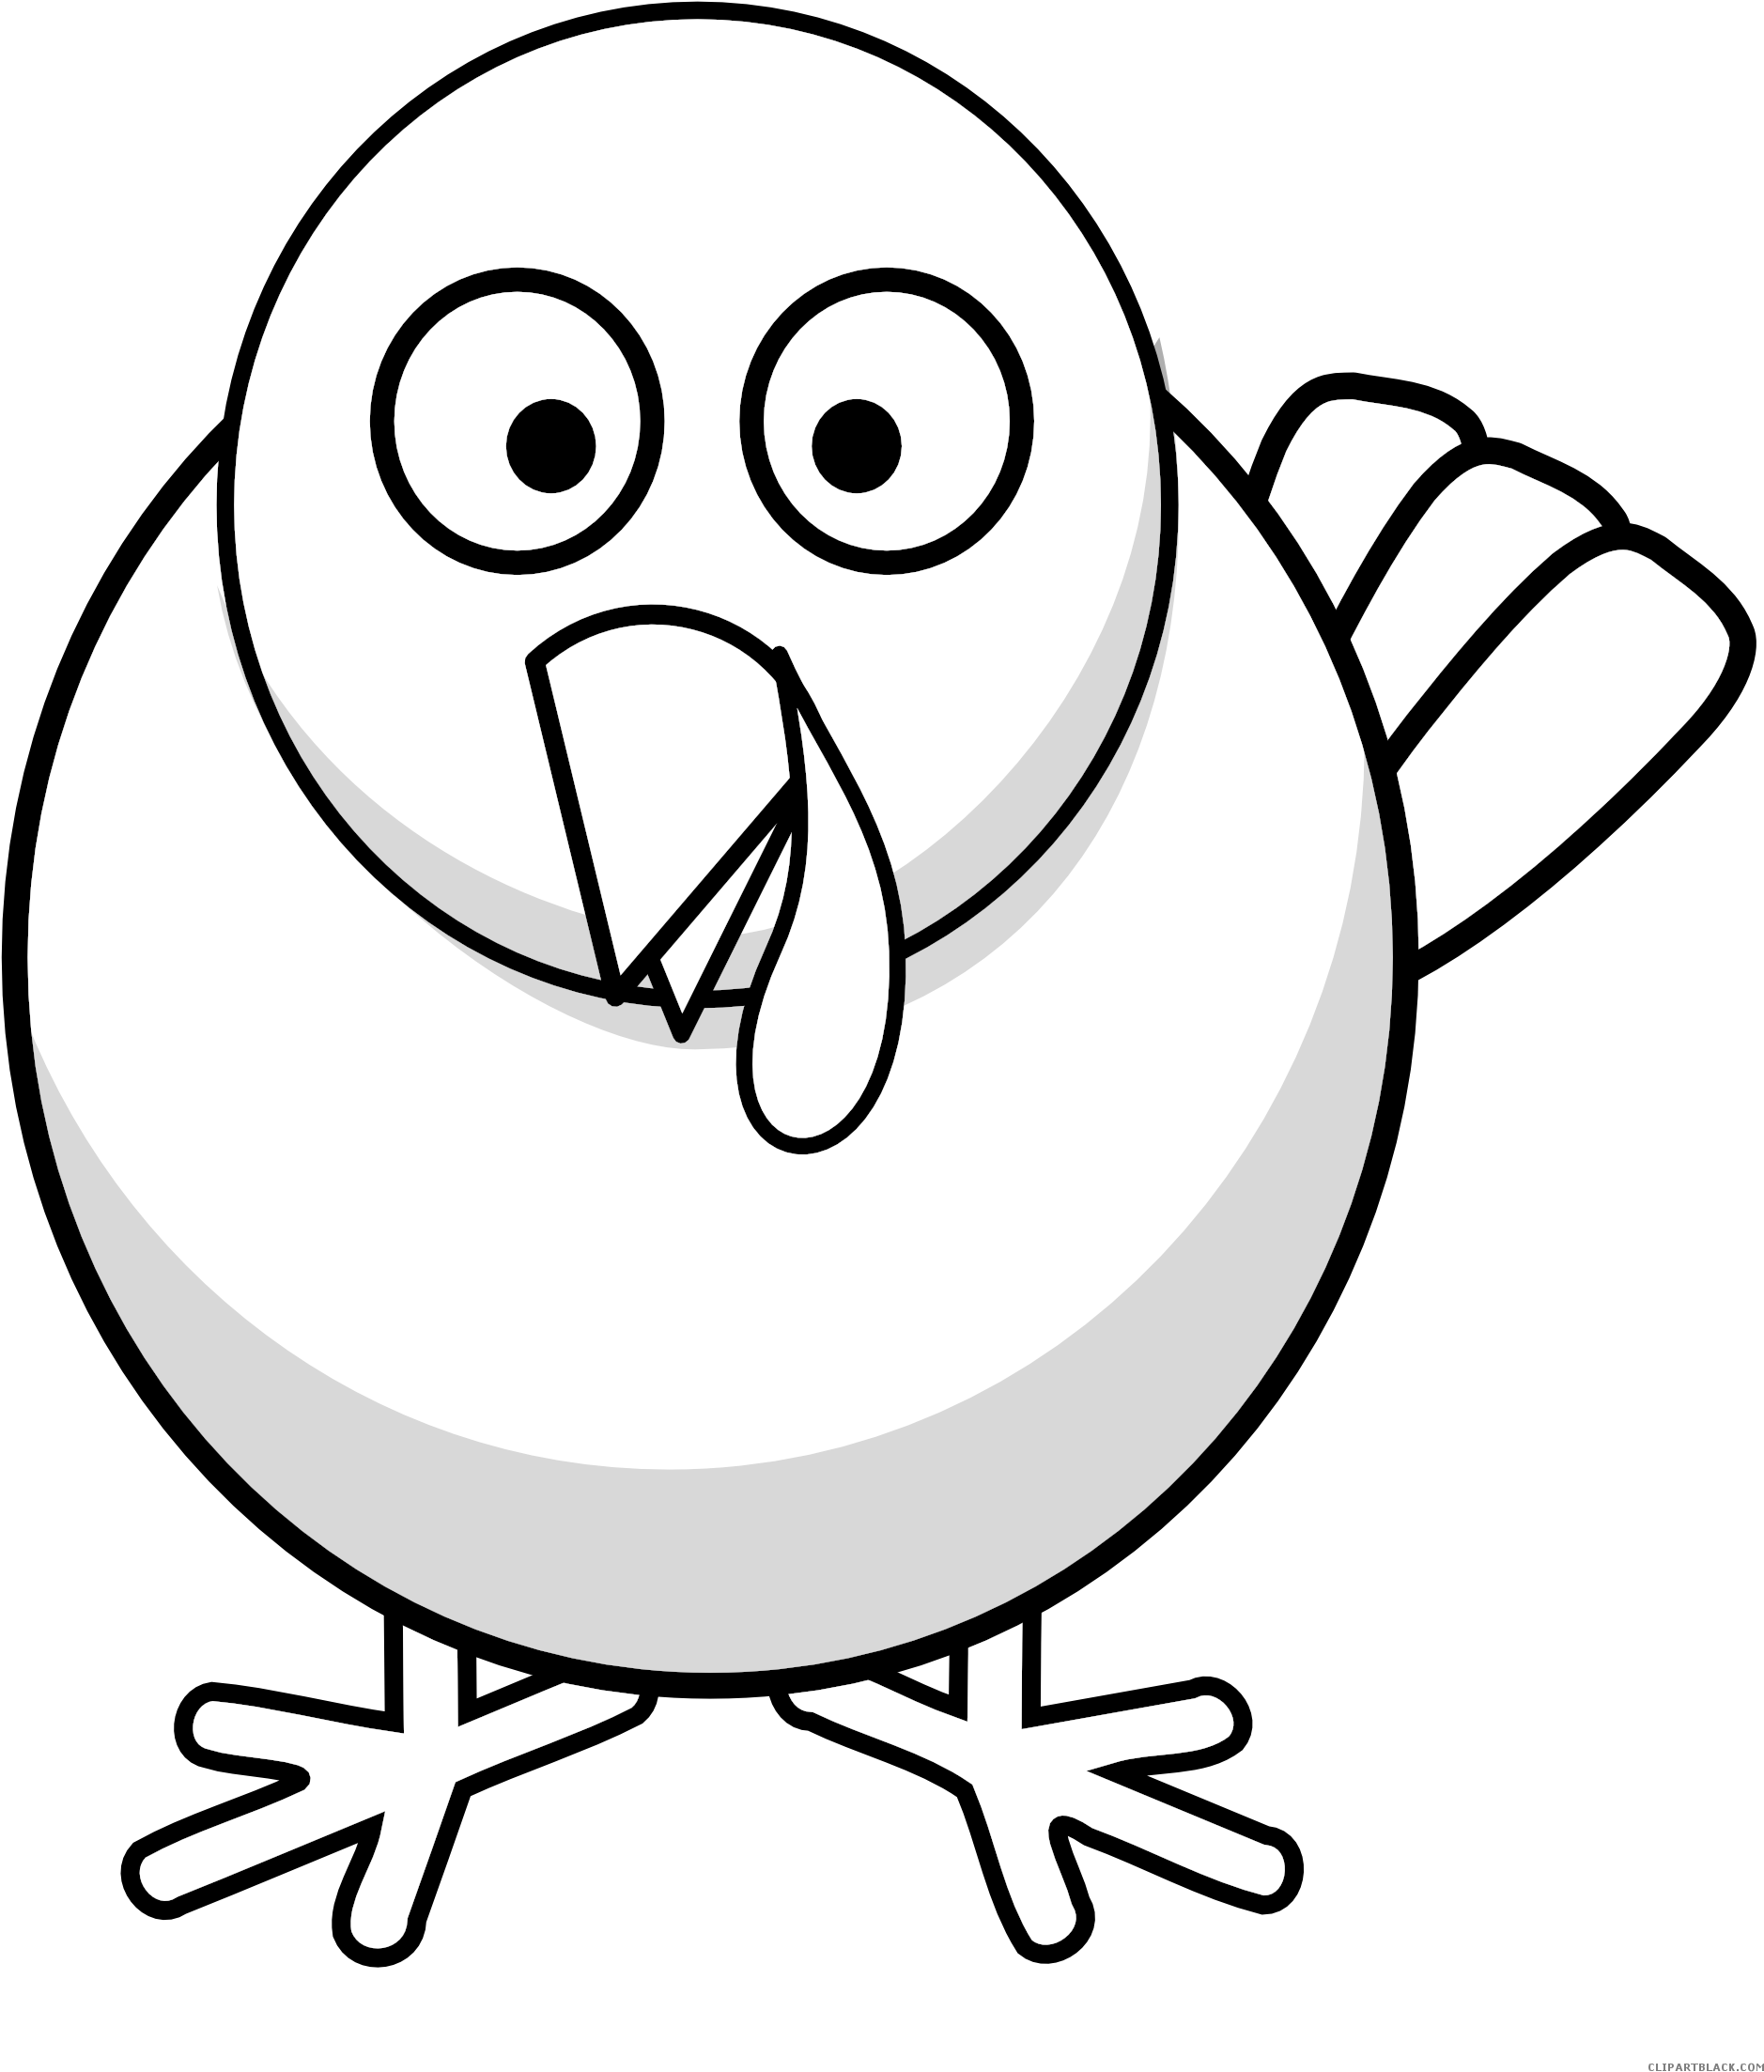 Turkey Bird Png Image With Transparent Background - Wild Turkey Clipart  Black And White - 635x592 PNG Download - PNGkit